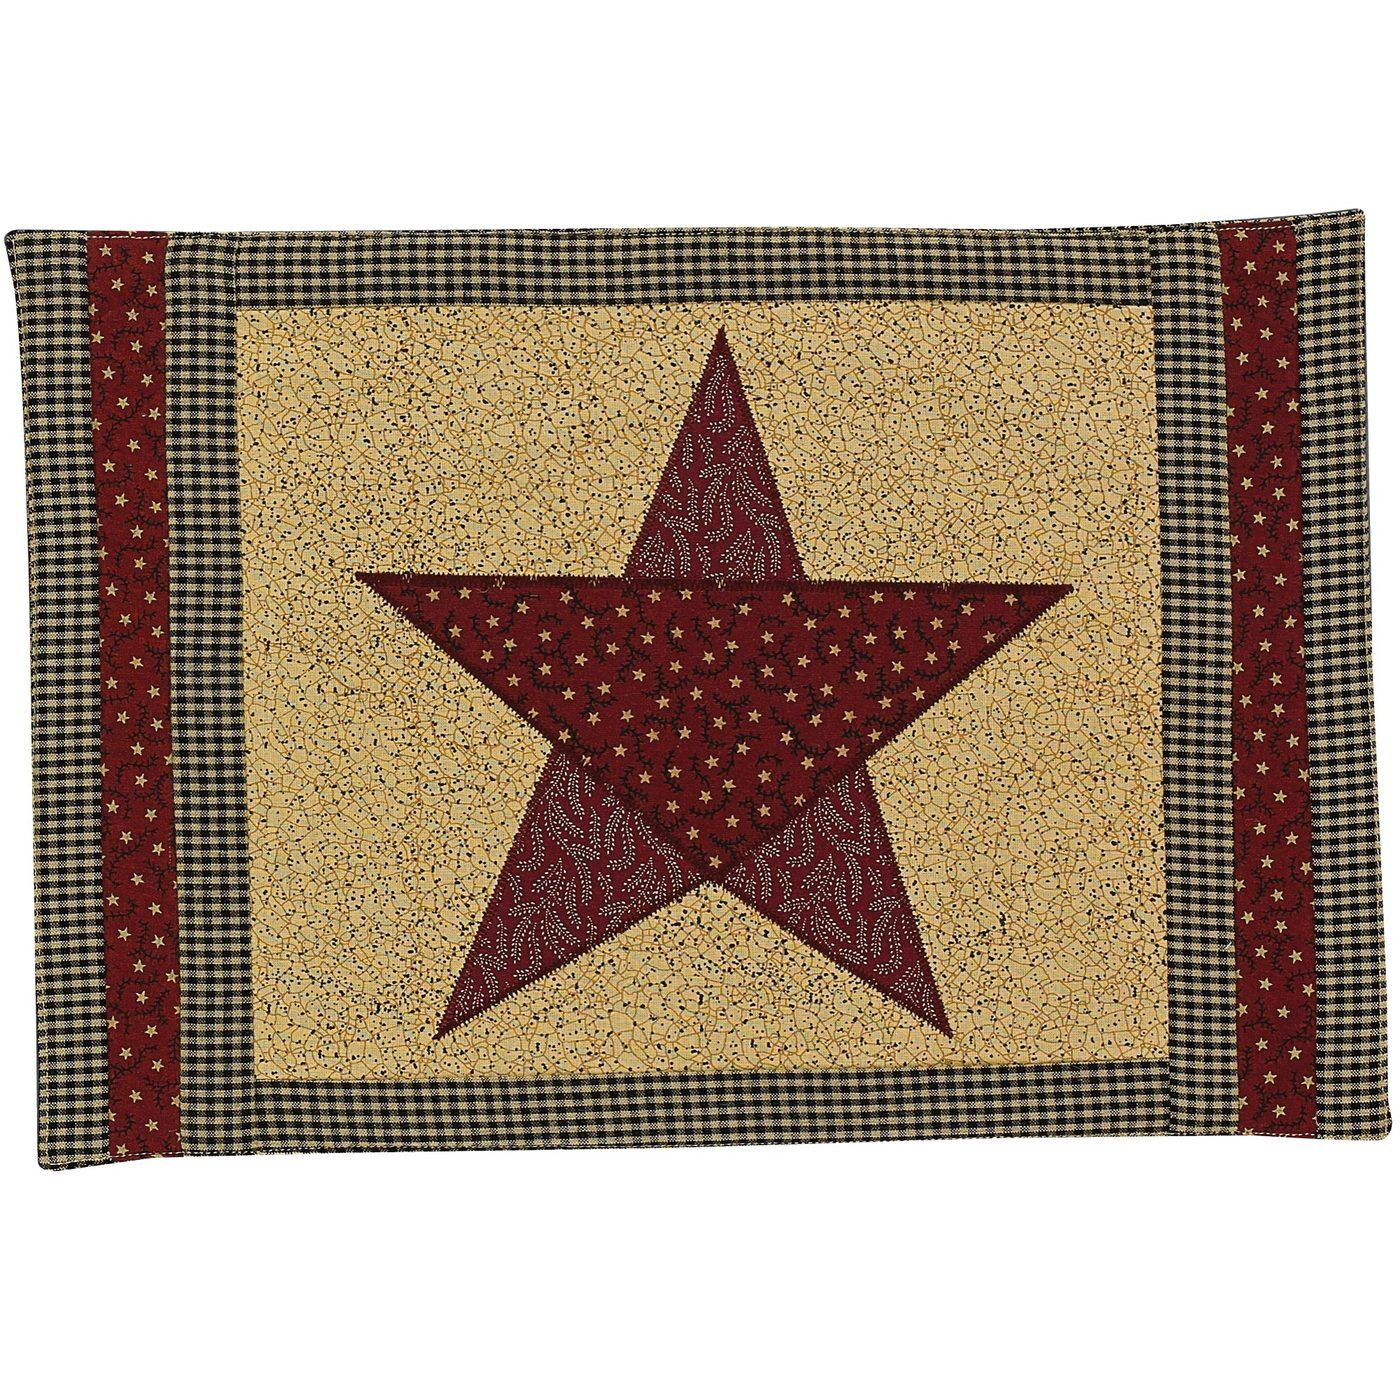 Country Star Placemats Set Of 4 373 01 Placemats Park Designs Country Stars